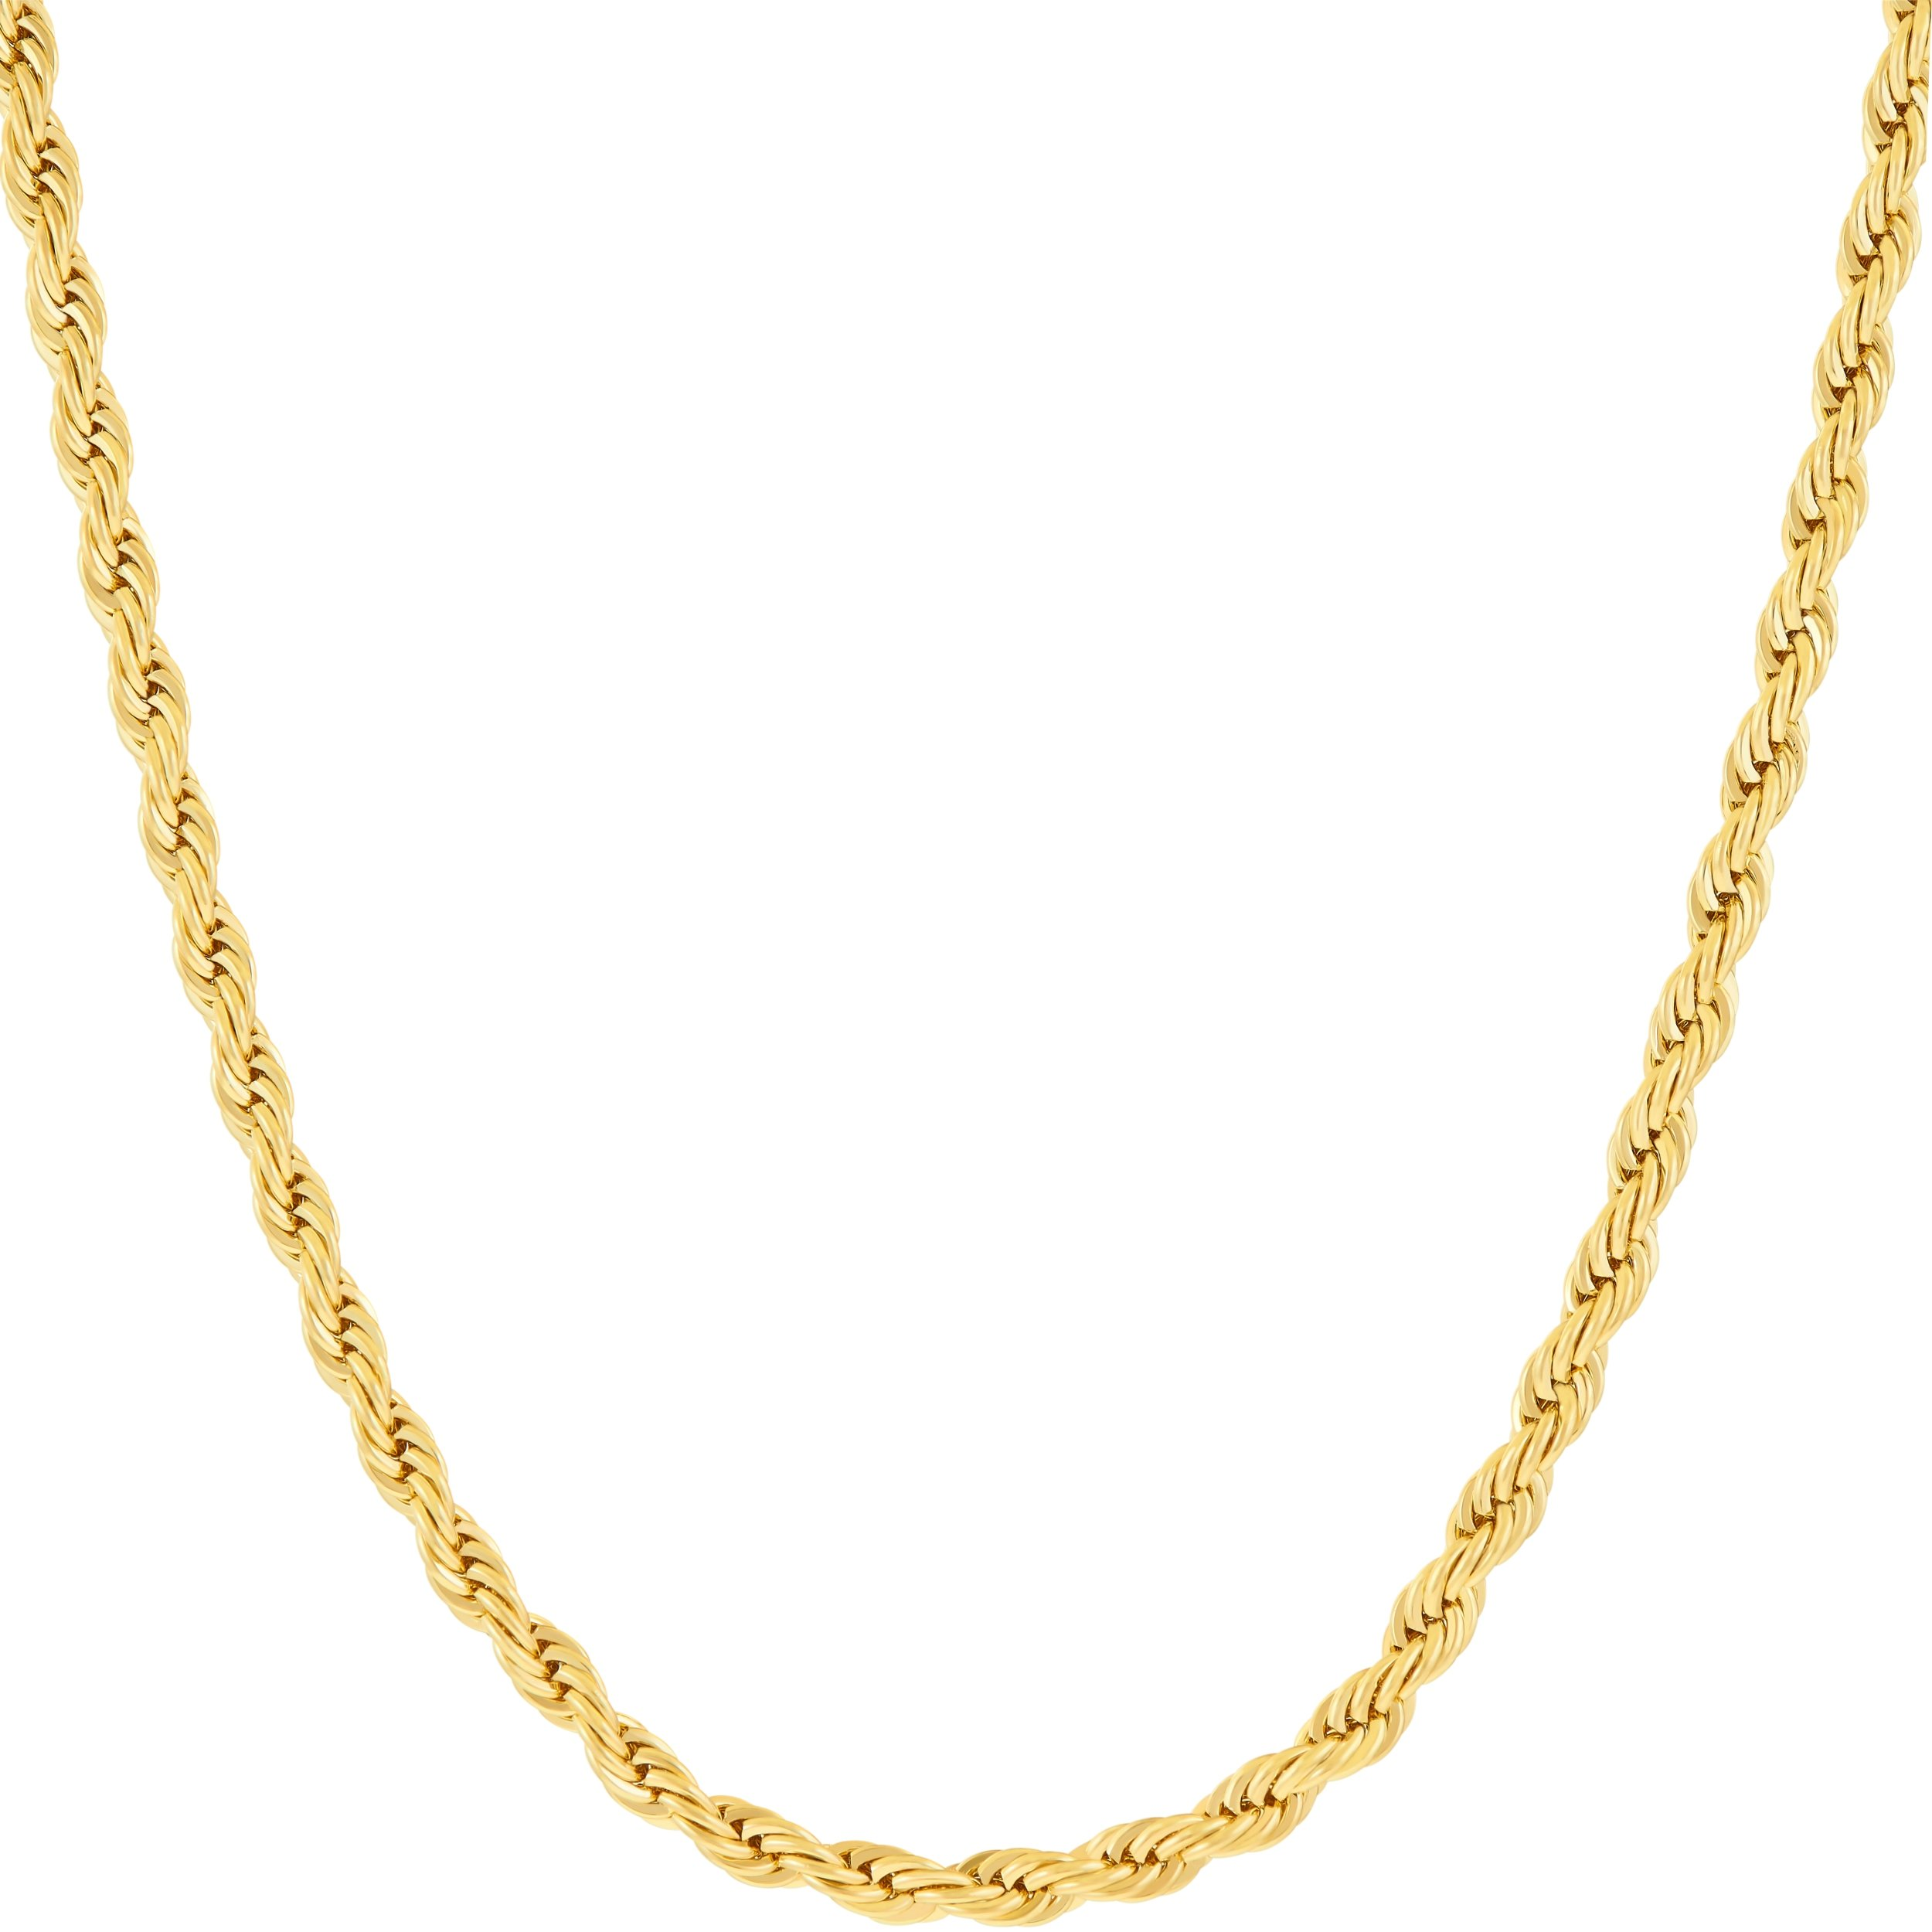 Lifetime Jewelry Pendant Necklace 3MM Rope Chain 24K Gold Plated Fashion Jewelry for Men or Women Standard Size 18 Inches